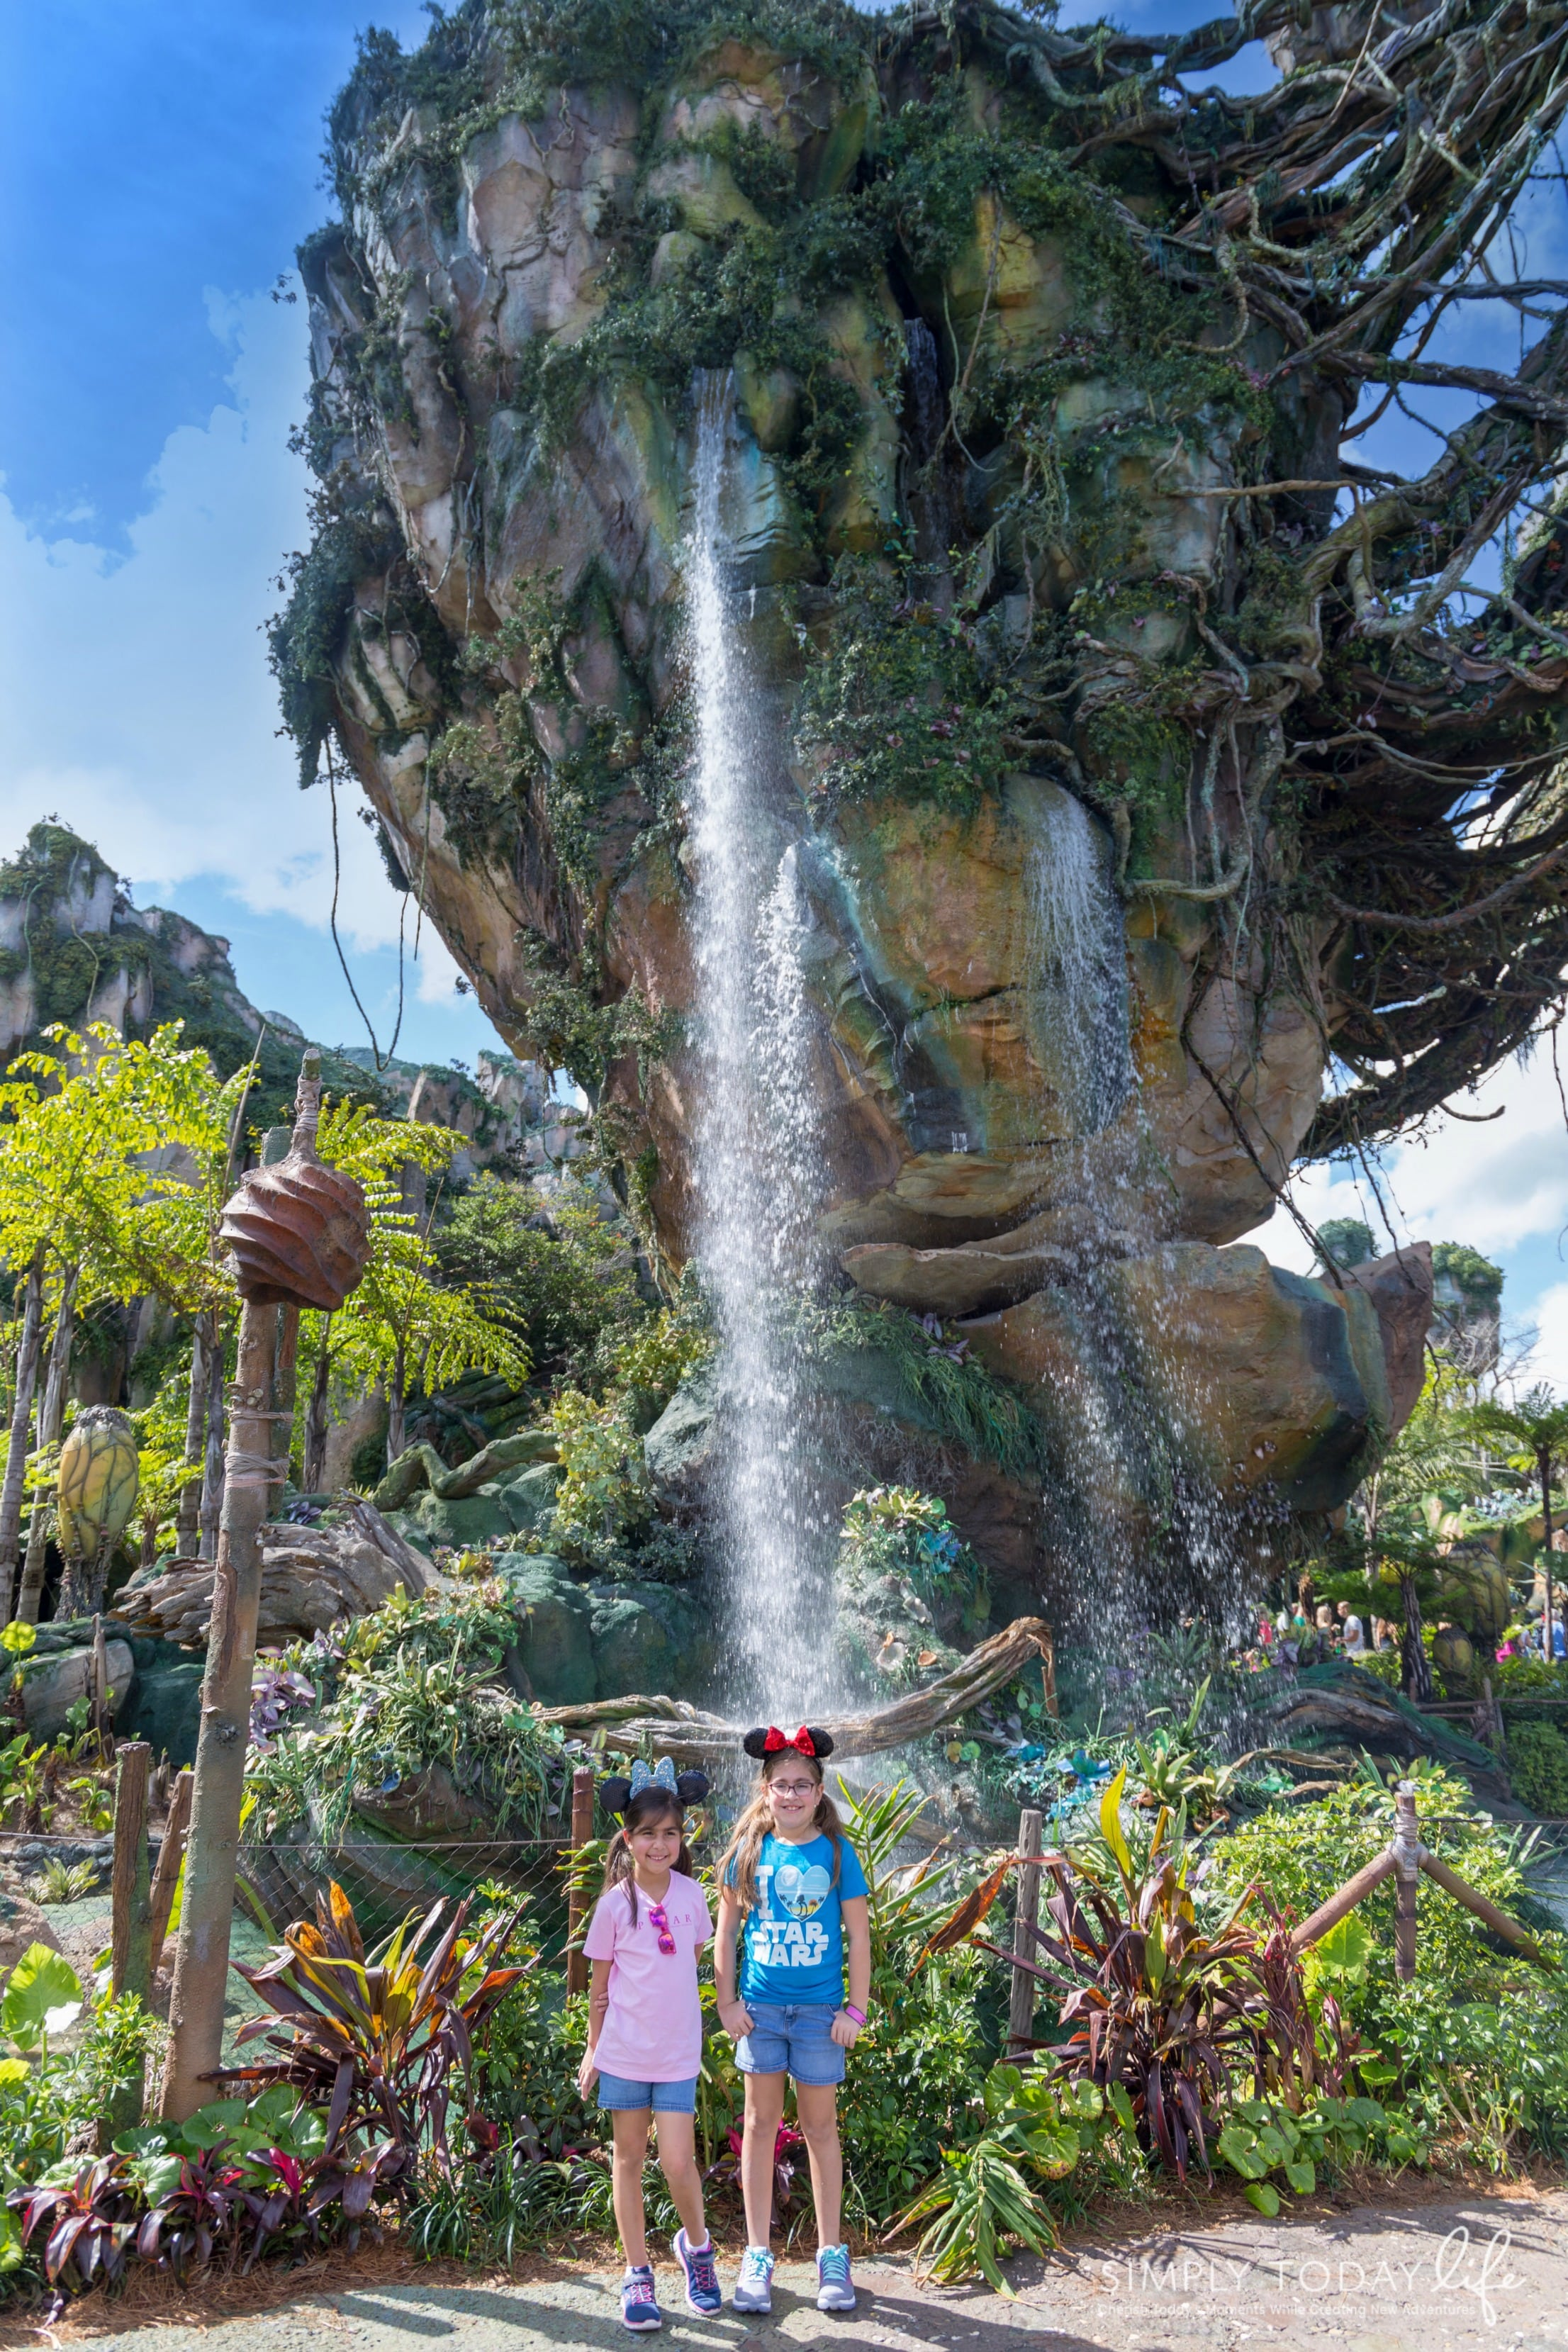 A Parents Guide To Visiting Disney Pandora with Kids - simplytodaylife.com